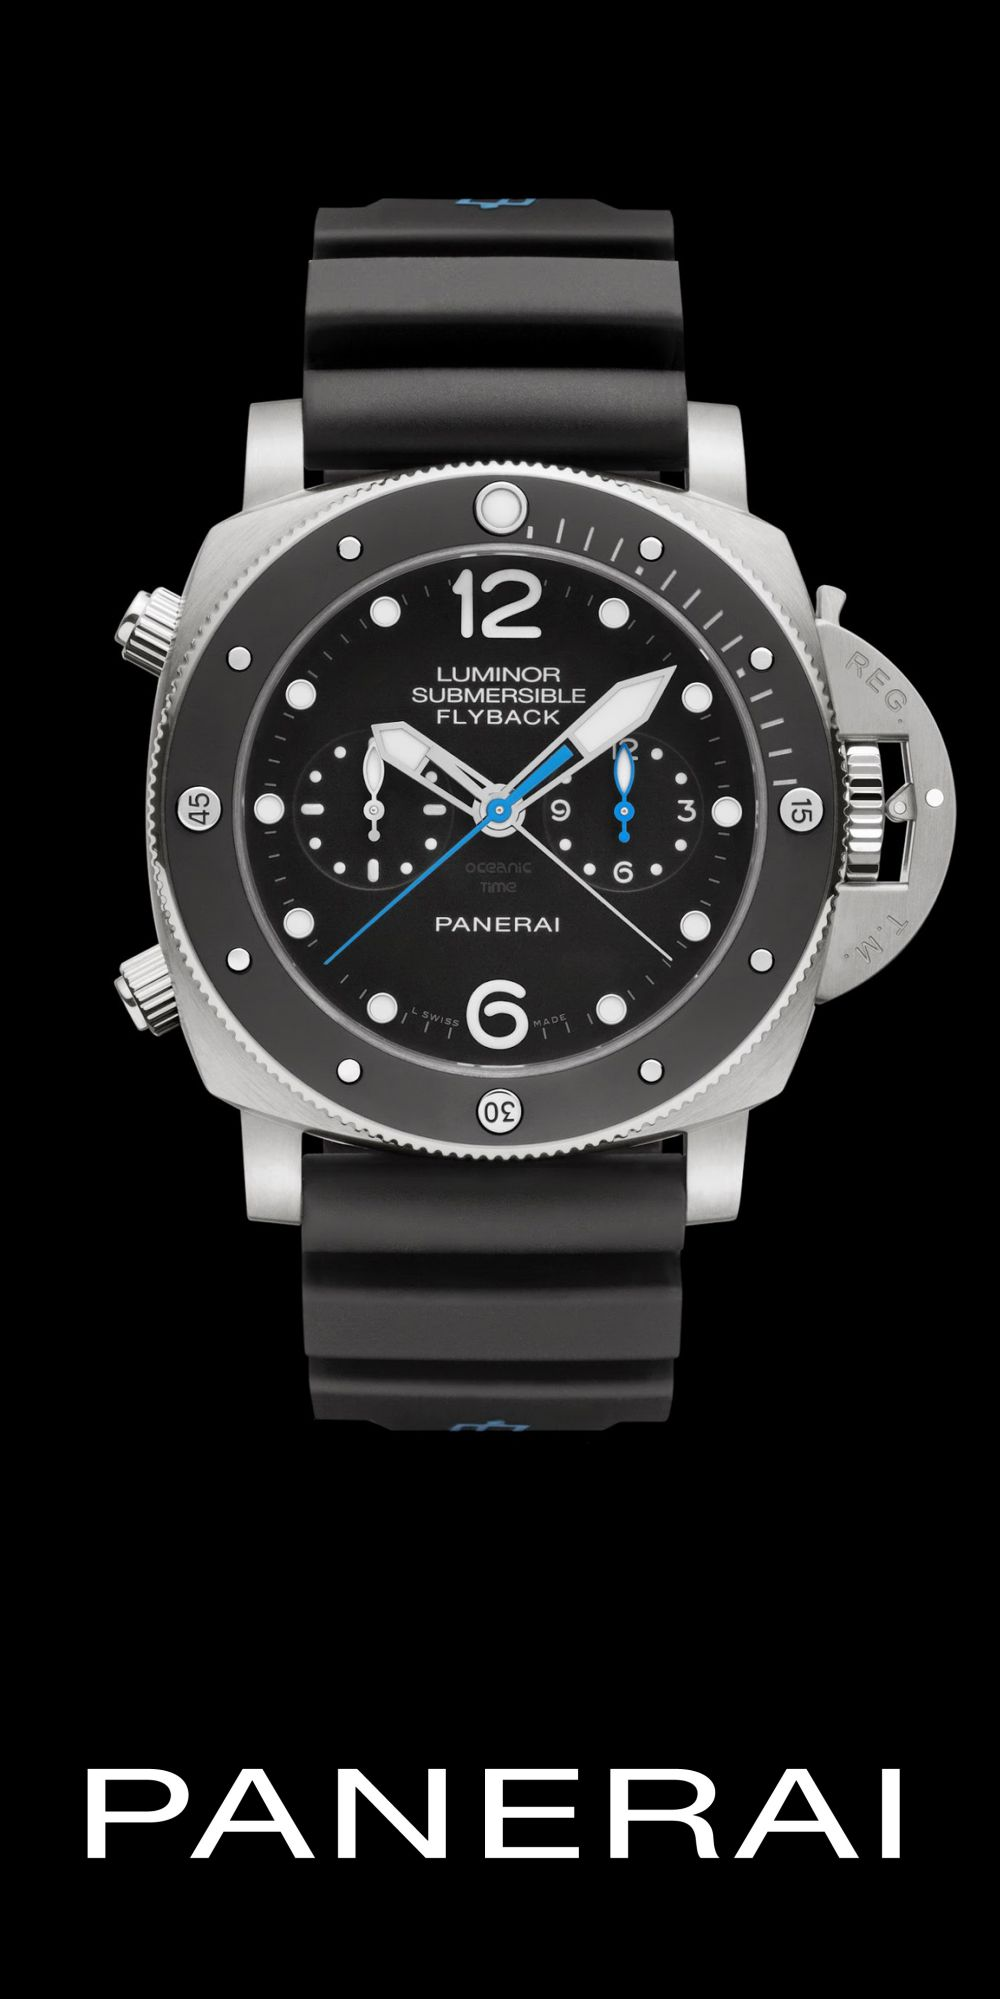 Panerai-Luminor-Submersible-1950-3-Days-Chrono-Flyback-Automatic.jpg